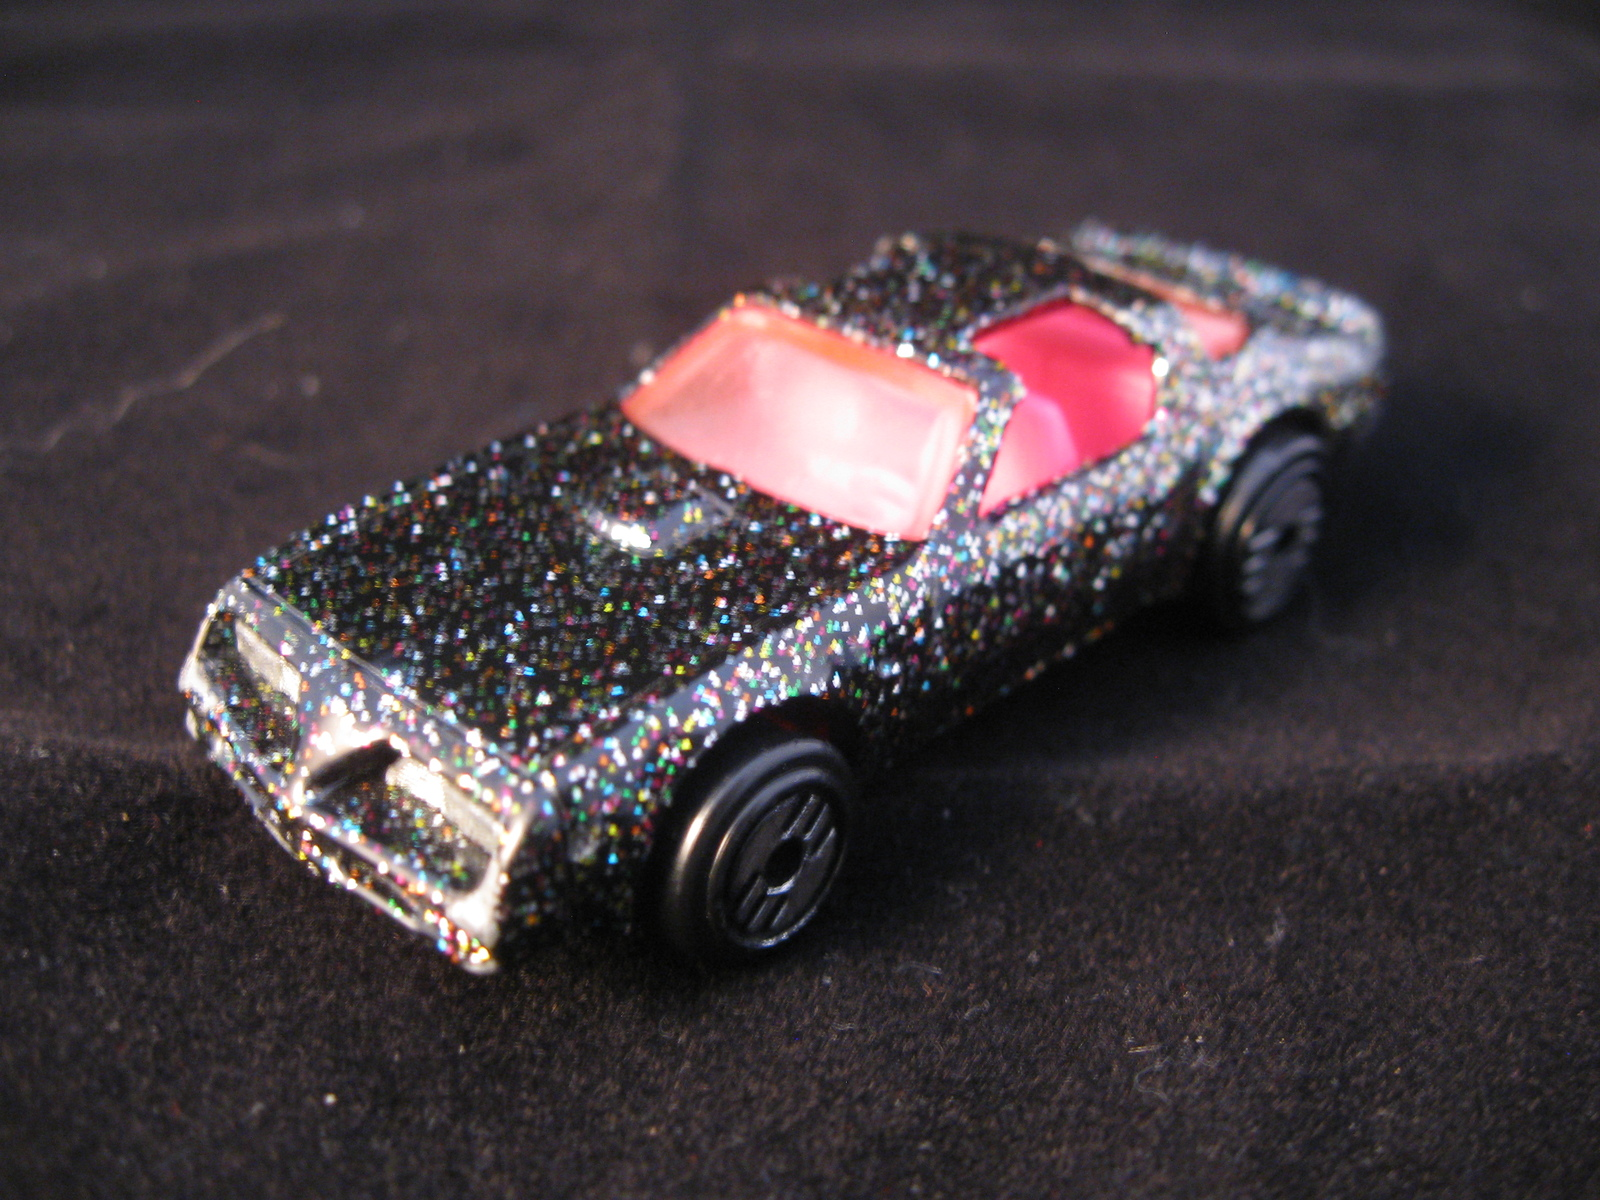 Buy low price, high quality pink glitter wheels with worldwide shipping on shopnow-bqimqrqk.tk